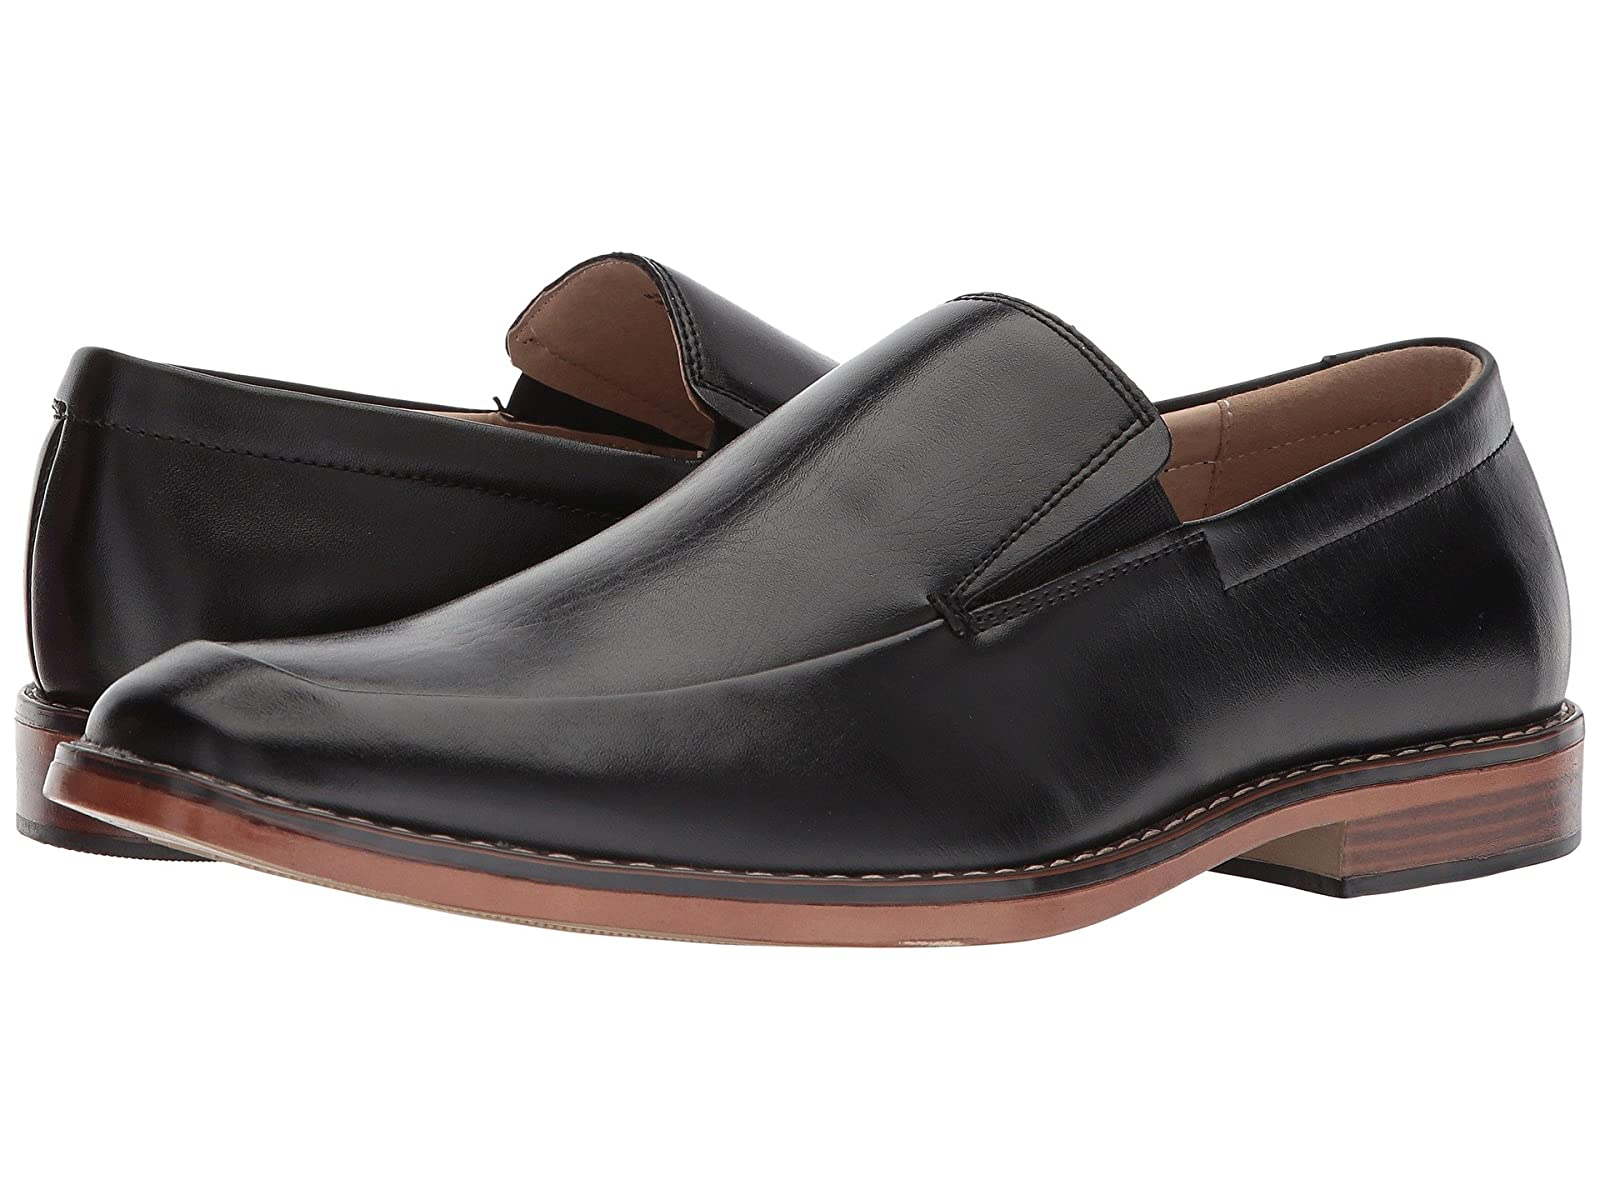 Steve Madden HelixCheap and distinctive eye-catching shoes